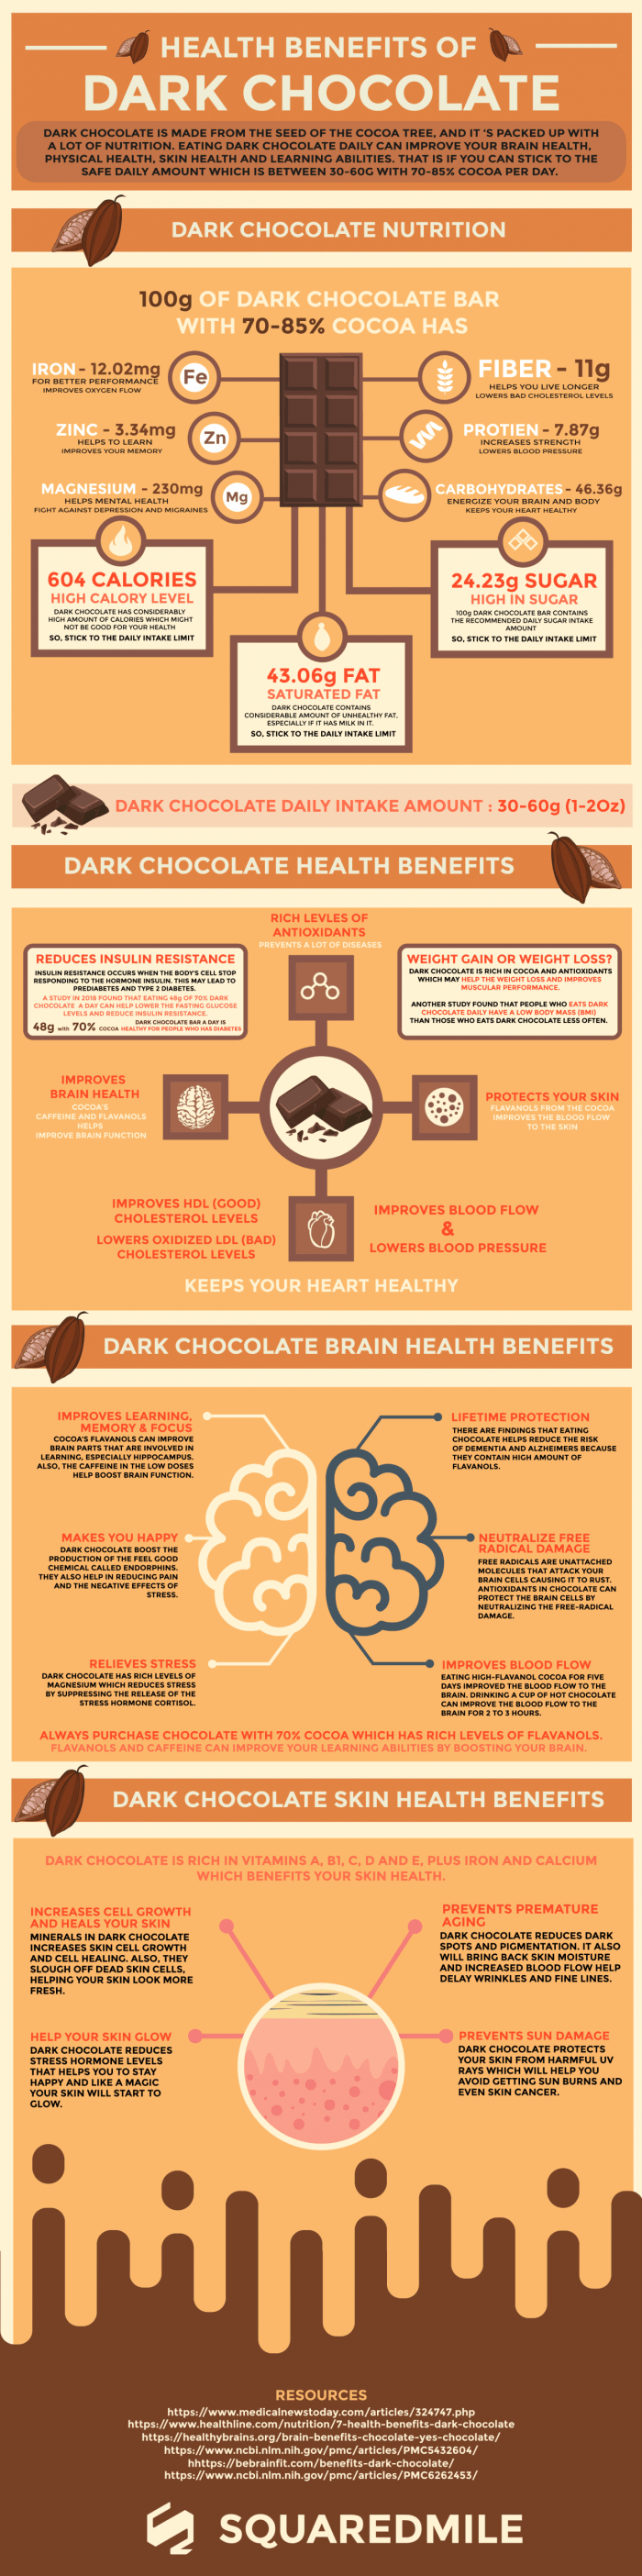 benefits of dark chocolate